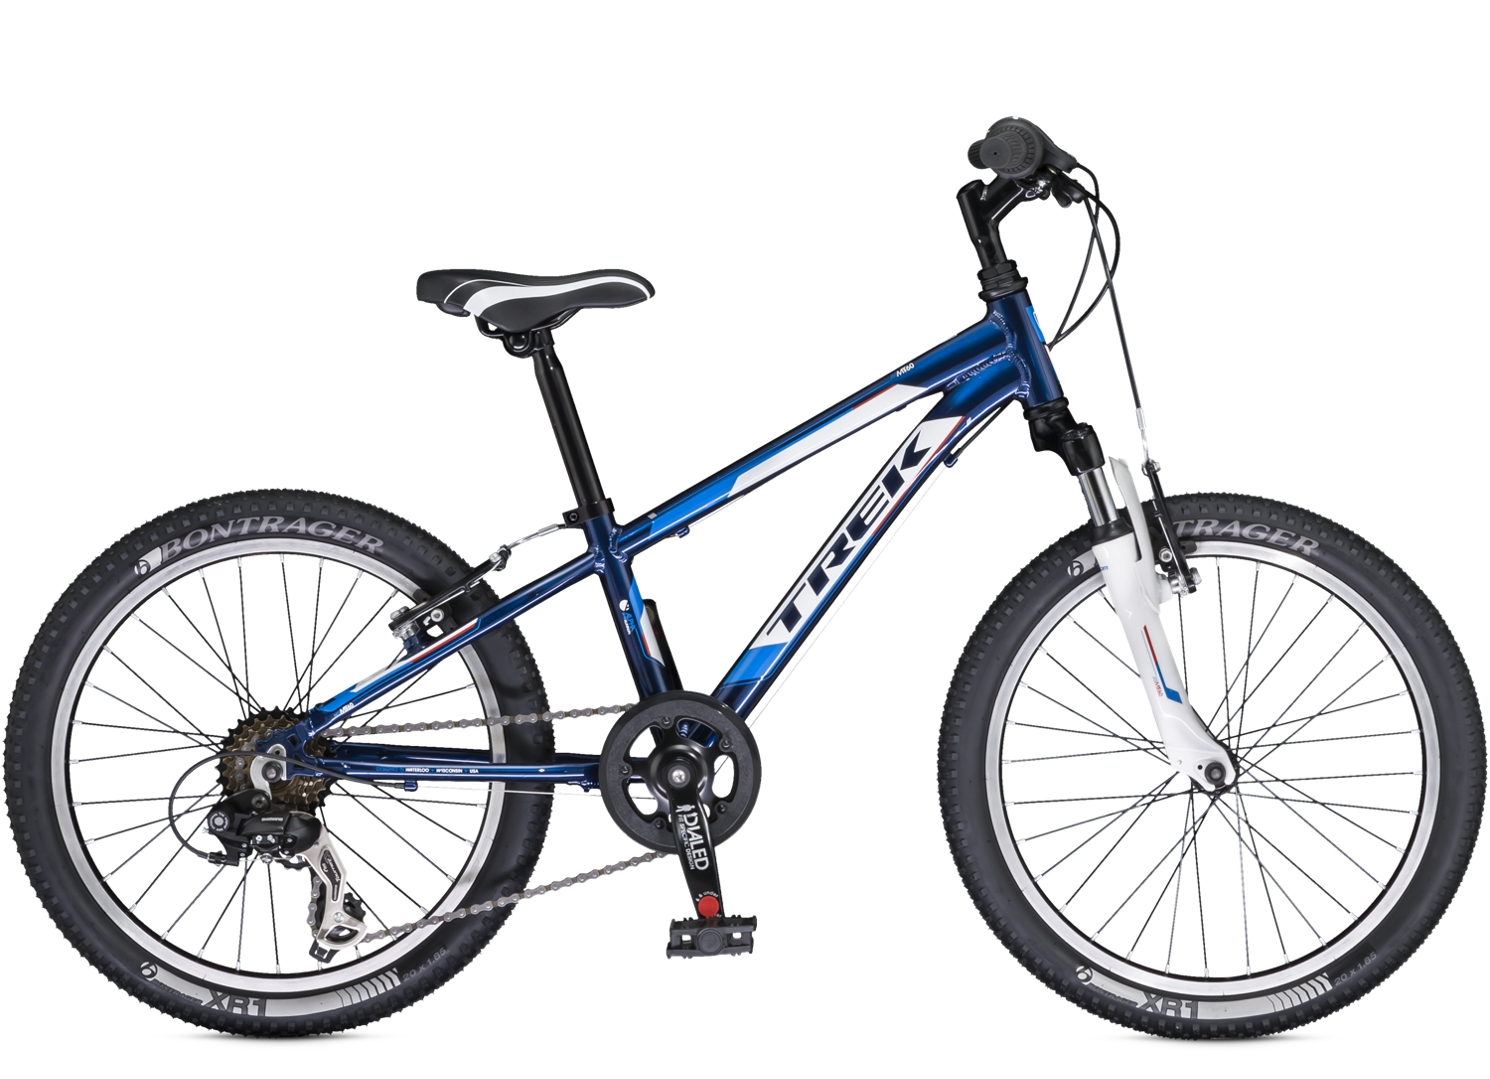 2014 Trek Mt 60 Boy's